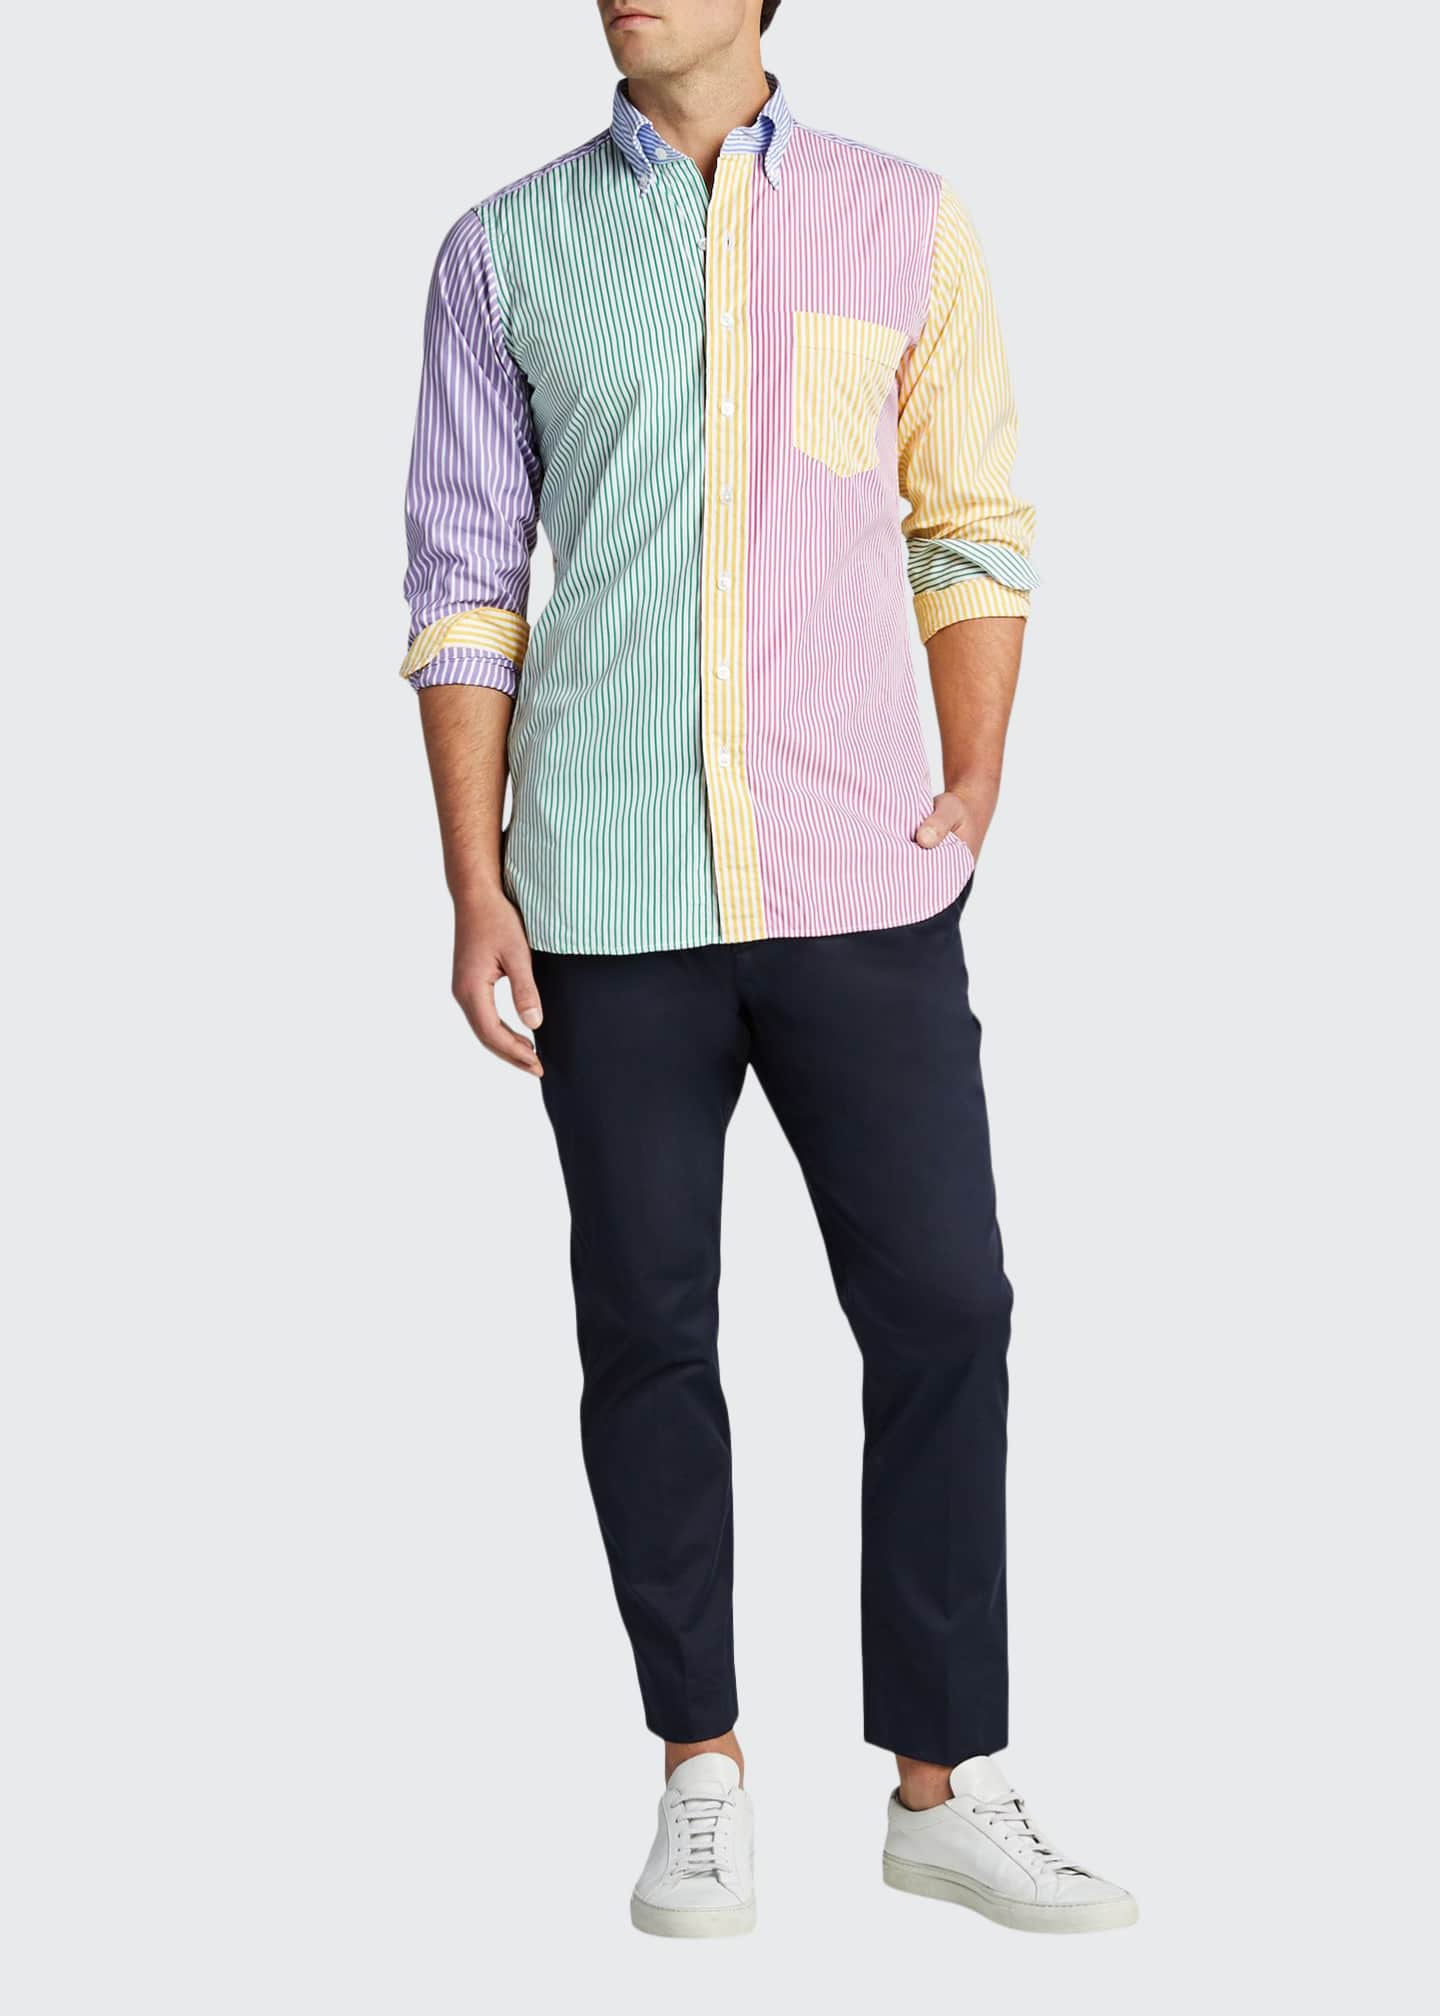 Image 1 of 5: Men's Multicolor Striped Sport Shirt